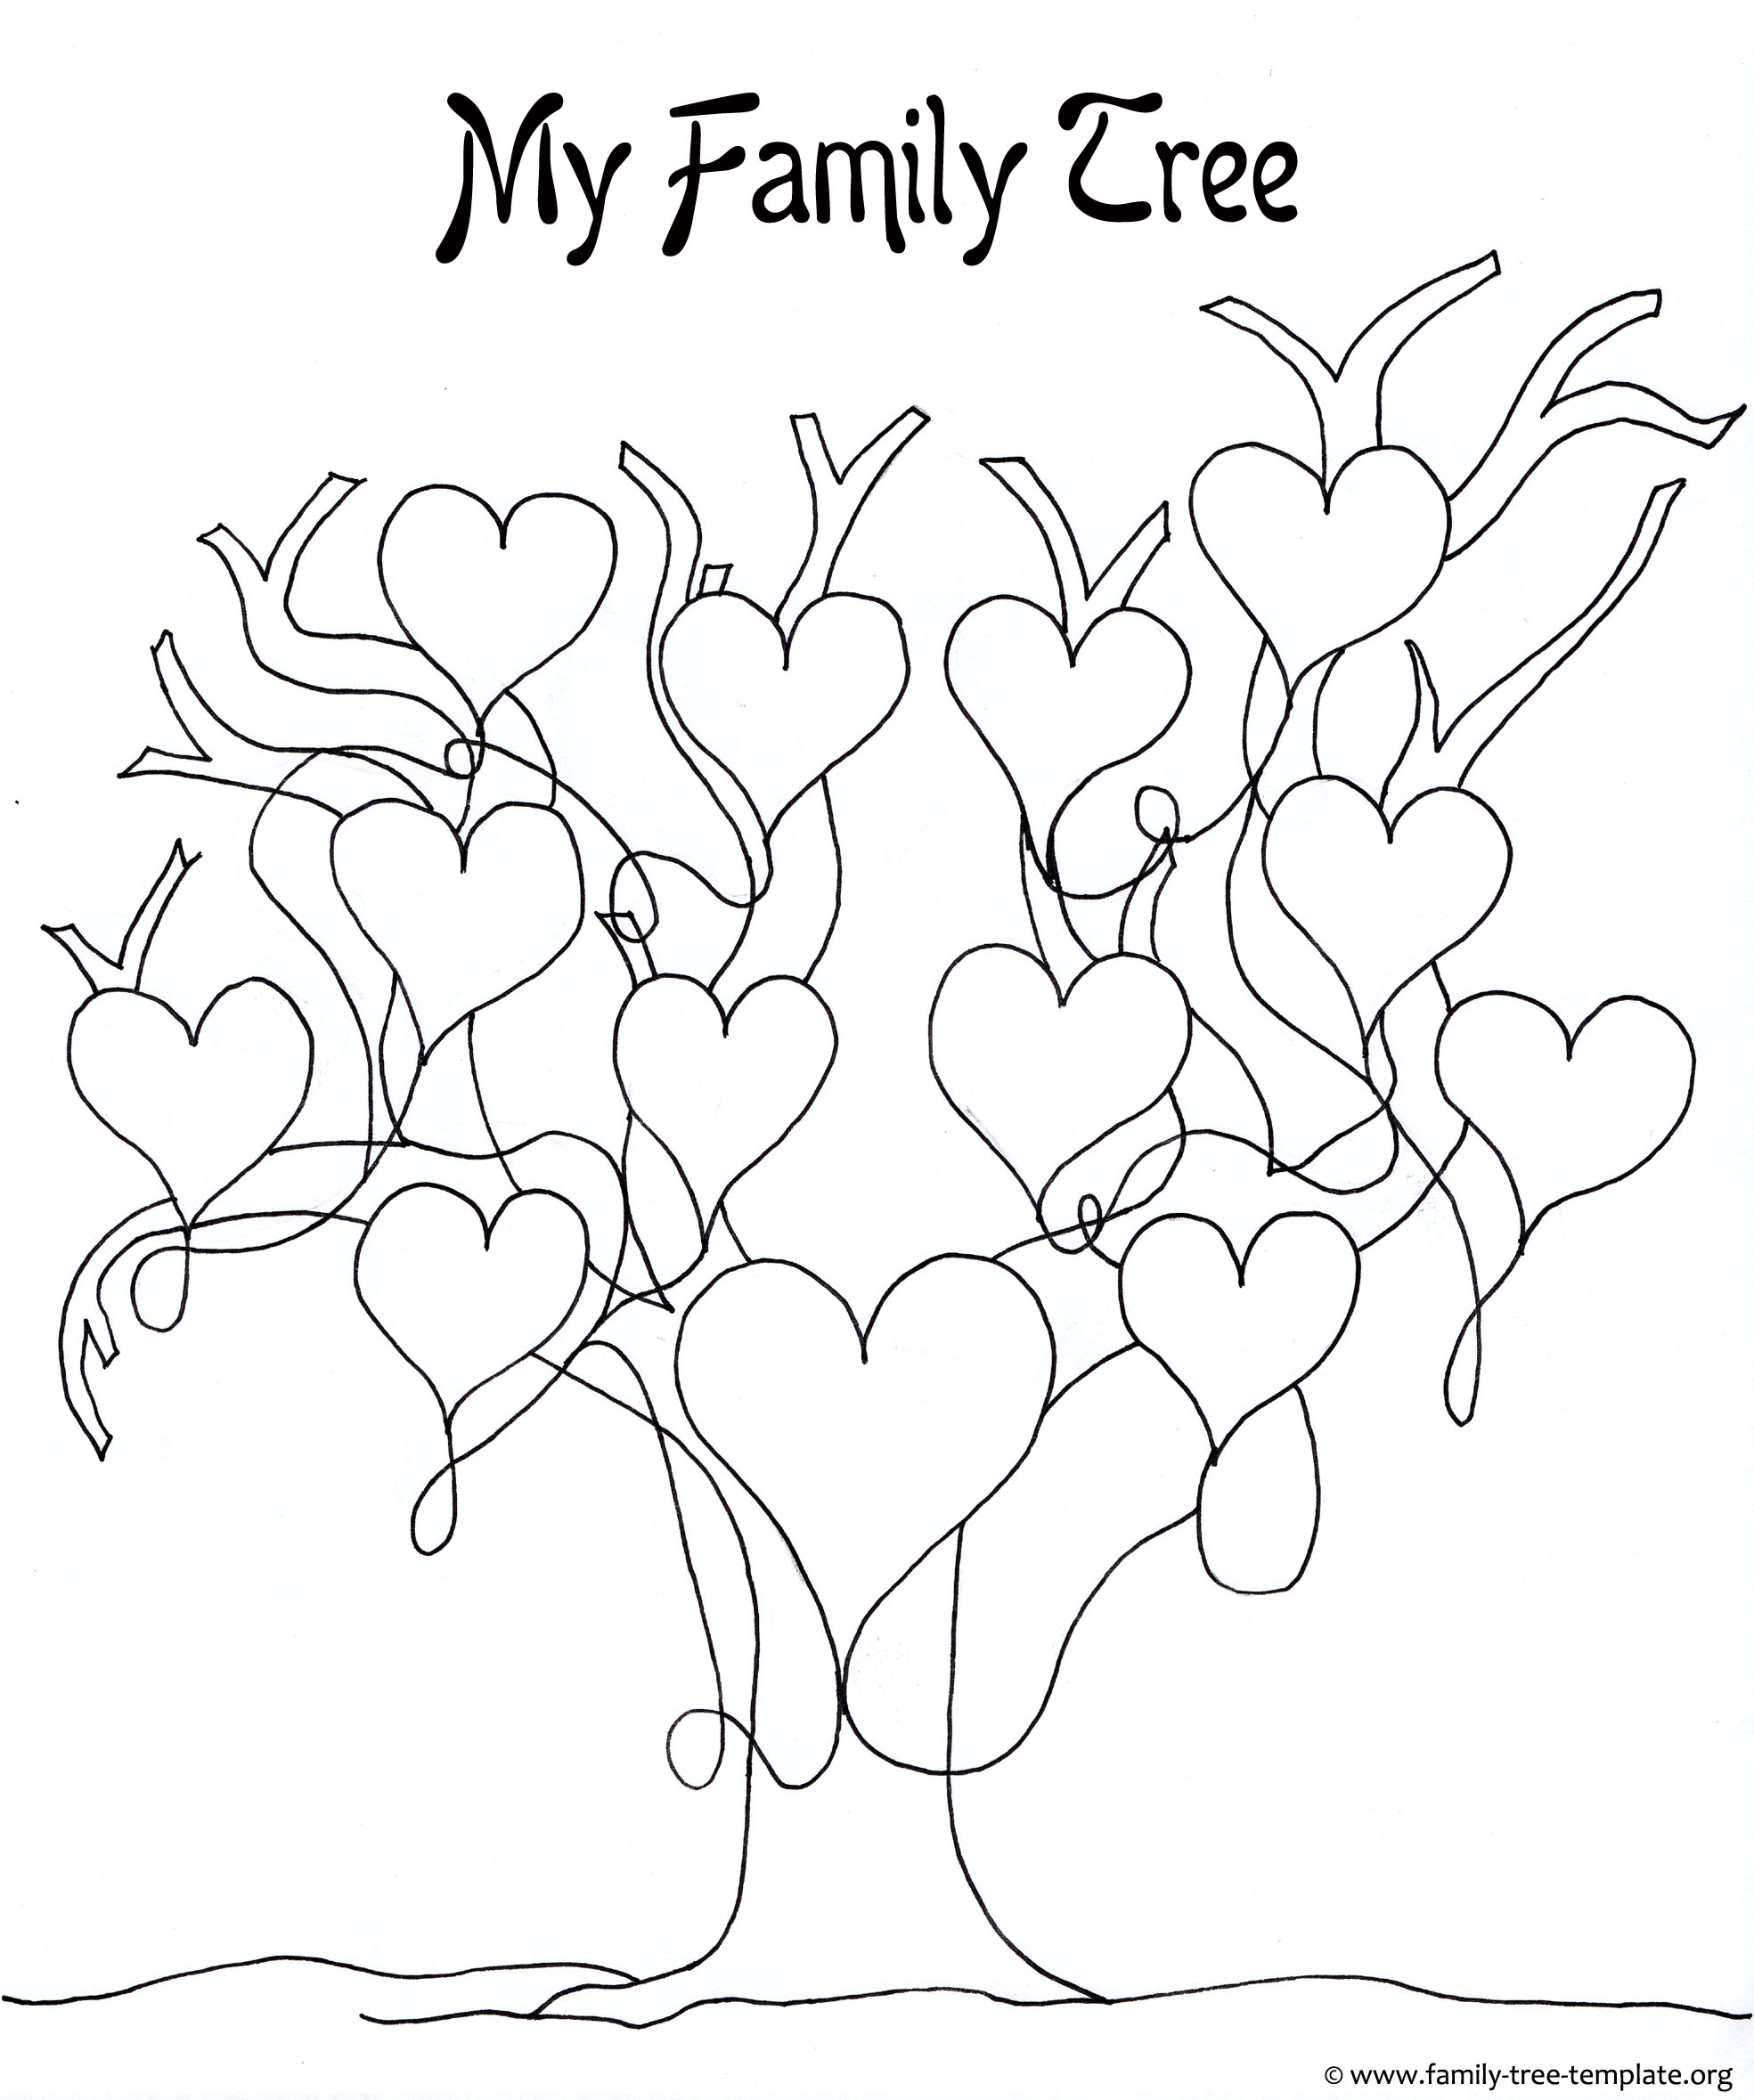 Worksheets Family Tree Worksheet For Kids a printable blank family tree to make your kids genealogy chart for girls color and have fun with